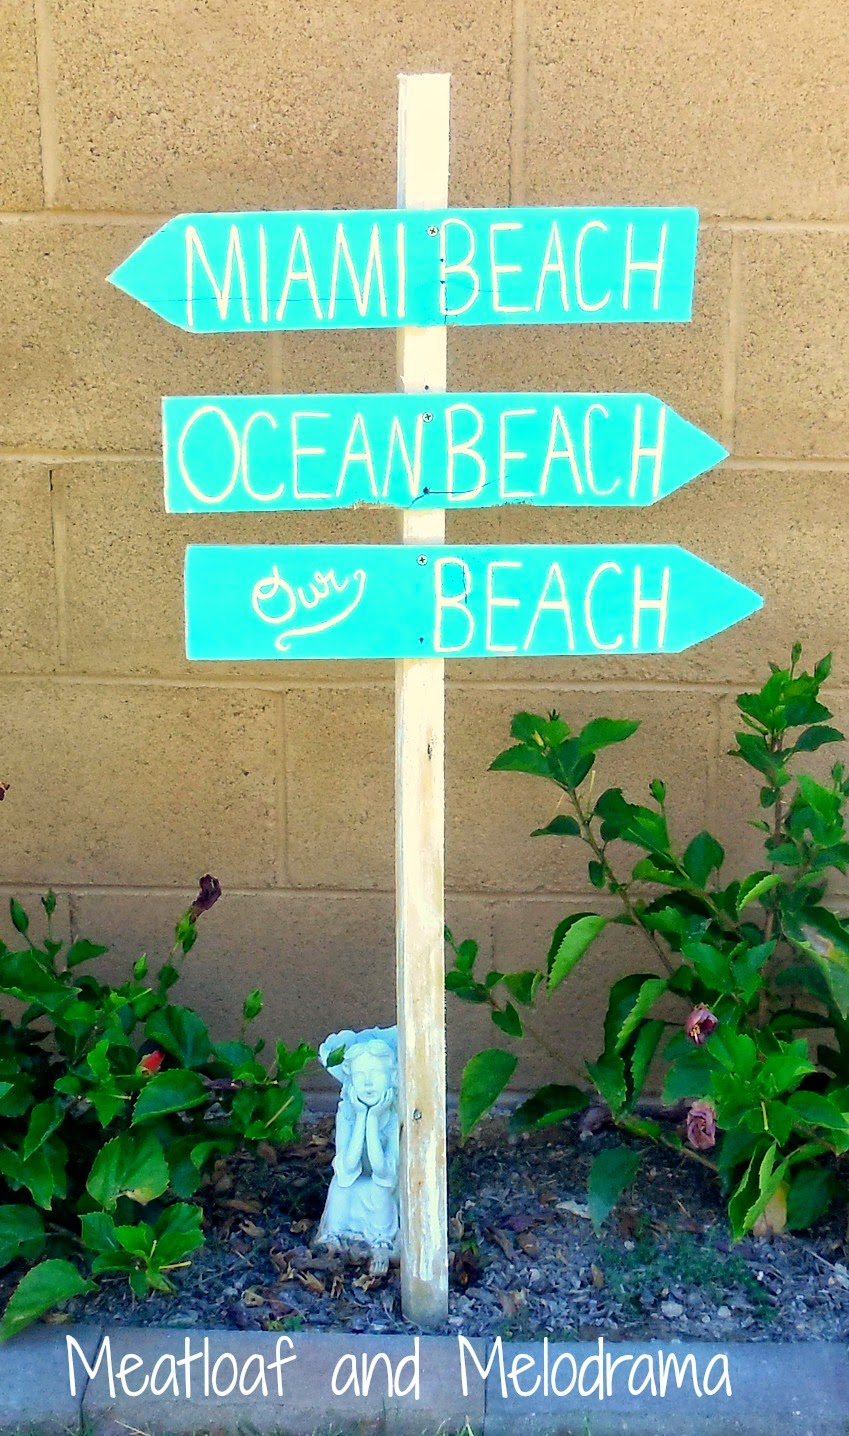 Fancy Diy Miami Ocean Beach Our Beach Wooden Signs Diy Beach Signs Meatloaf Melodrama Beach Decor Ideas Diy Beach Me Party Decorations Diy home decor Beach Decorations Diy